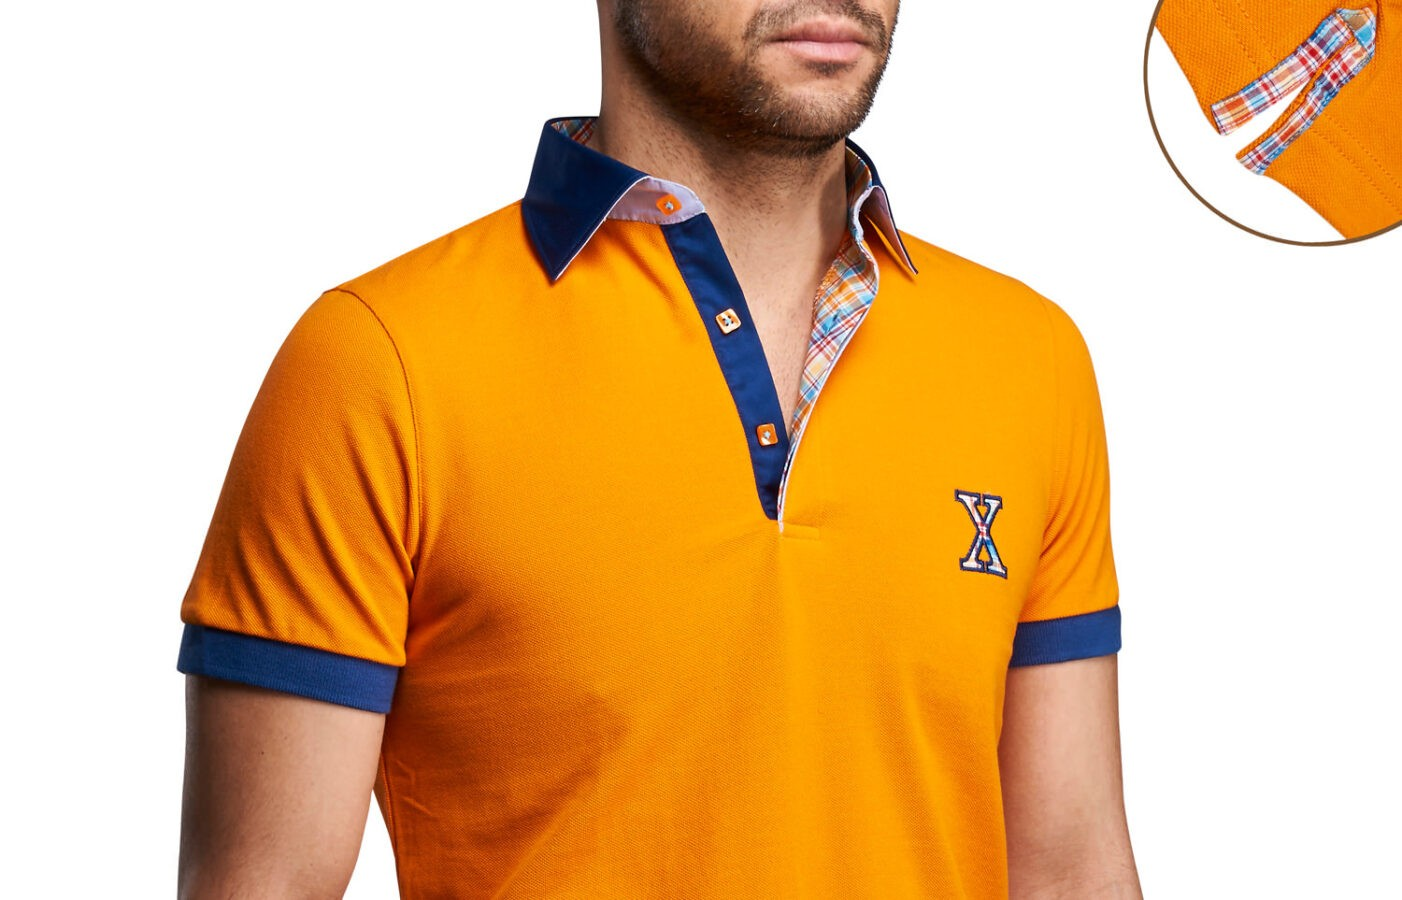 0564b12dea6 Every man needs to have at least three in their wardrobe. The right polo  pairs with anything and is perfect for everything from the office to the  beach ...